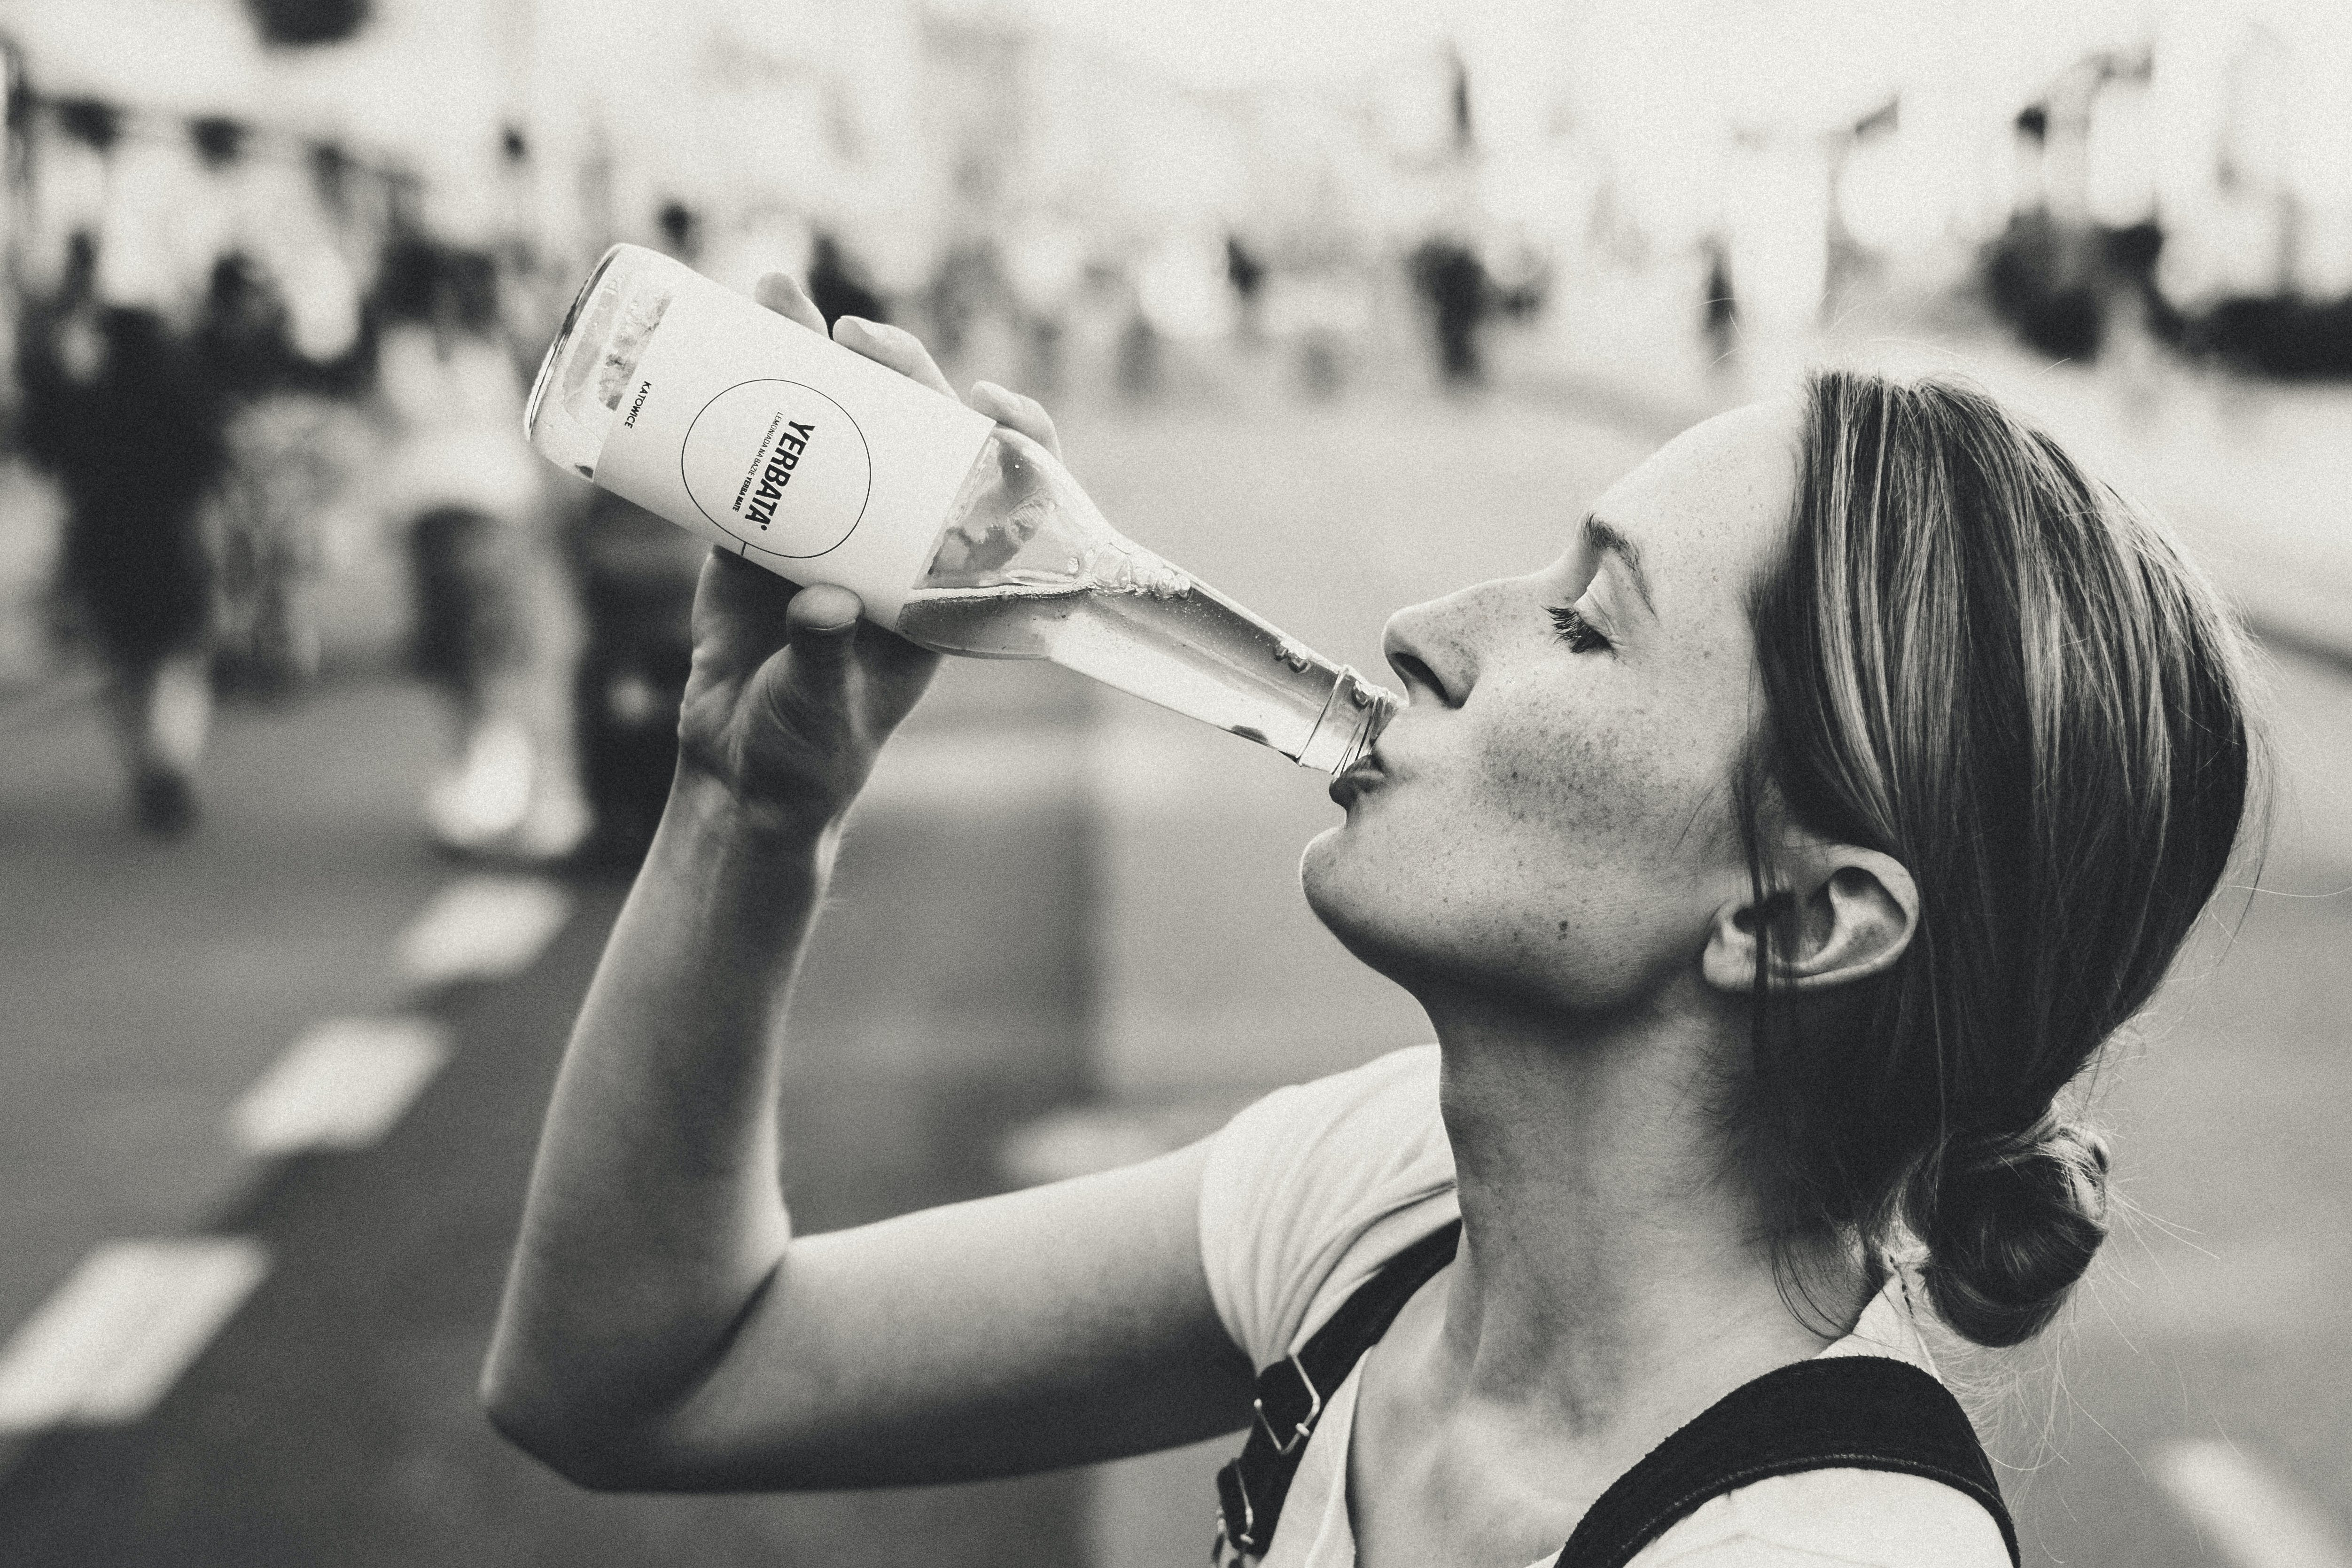 Woman Holding Glass Bottle in Grayscale Photo